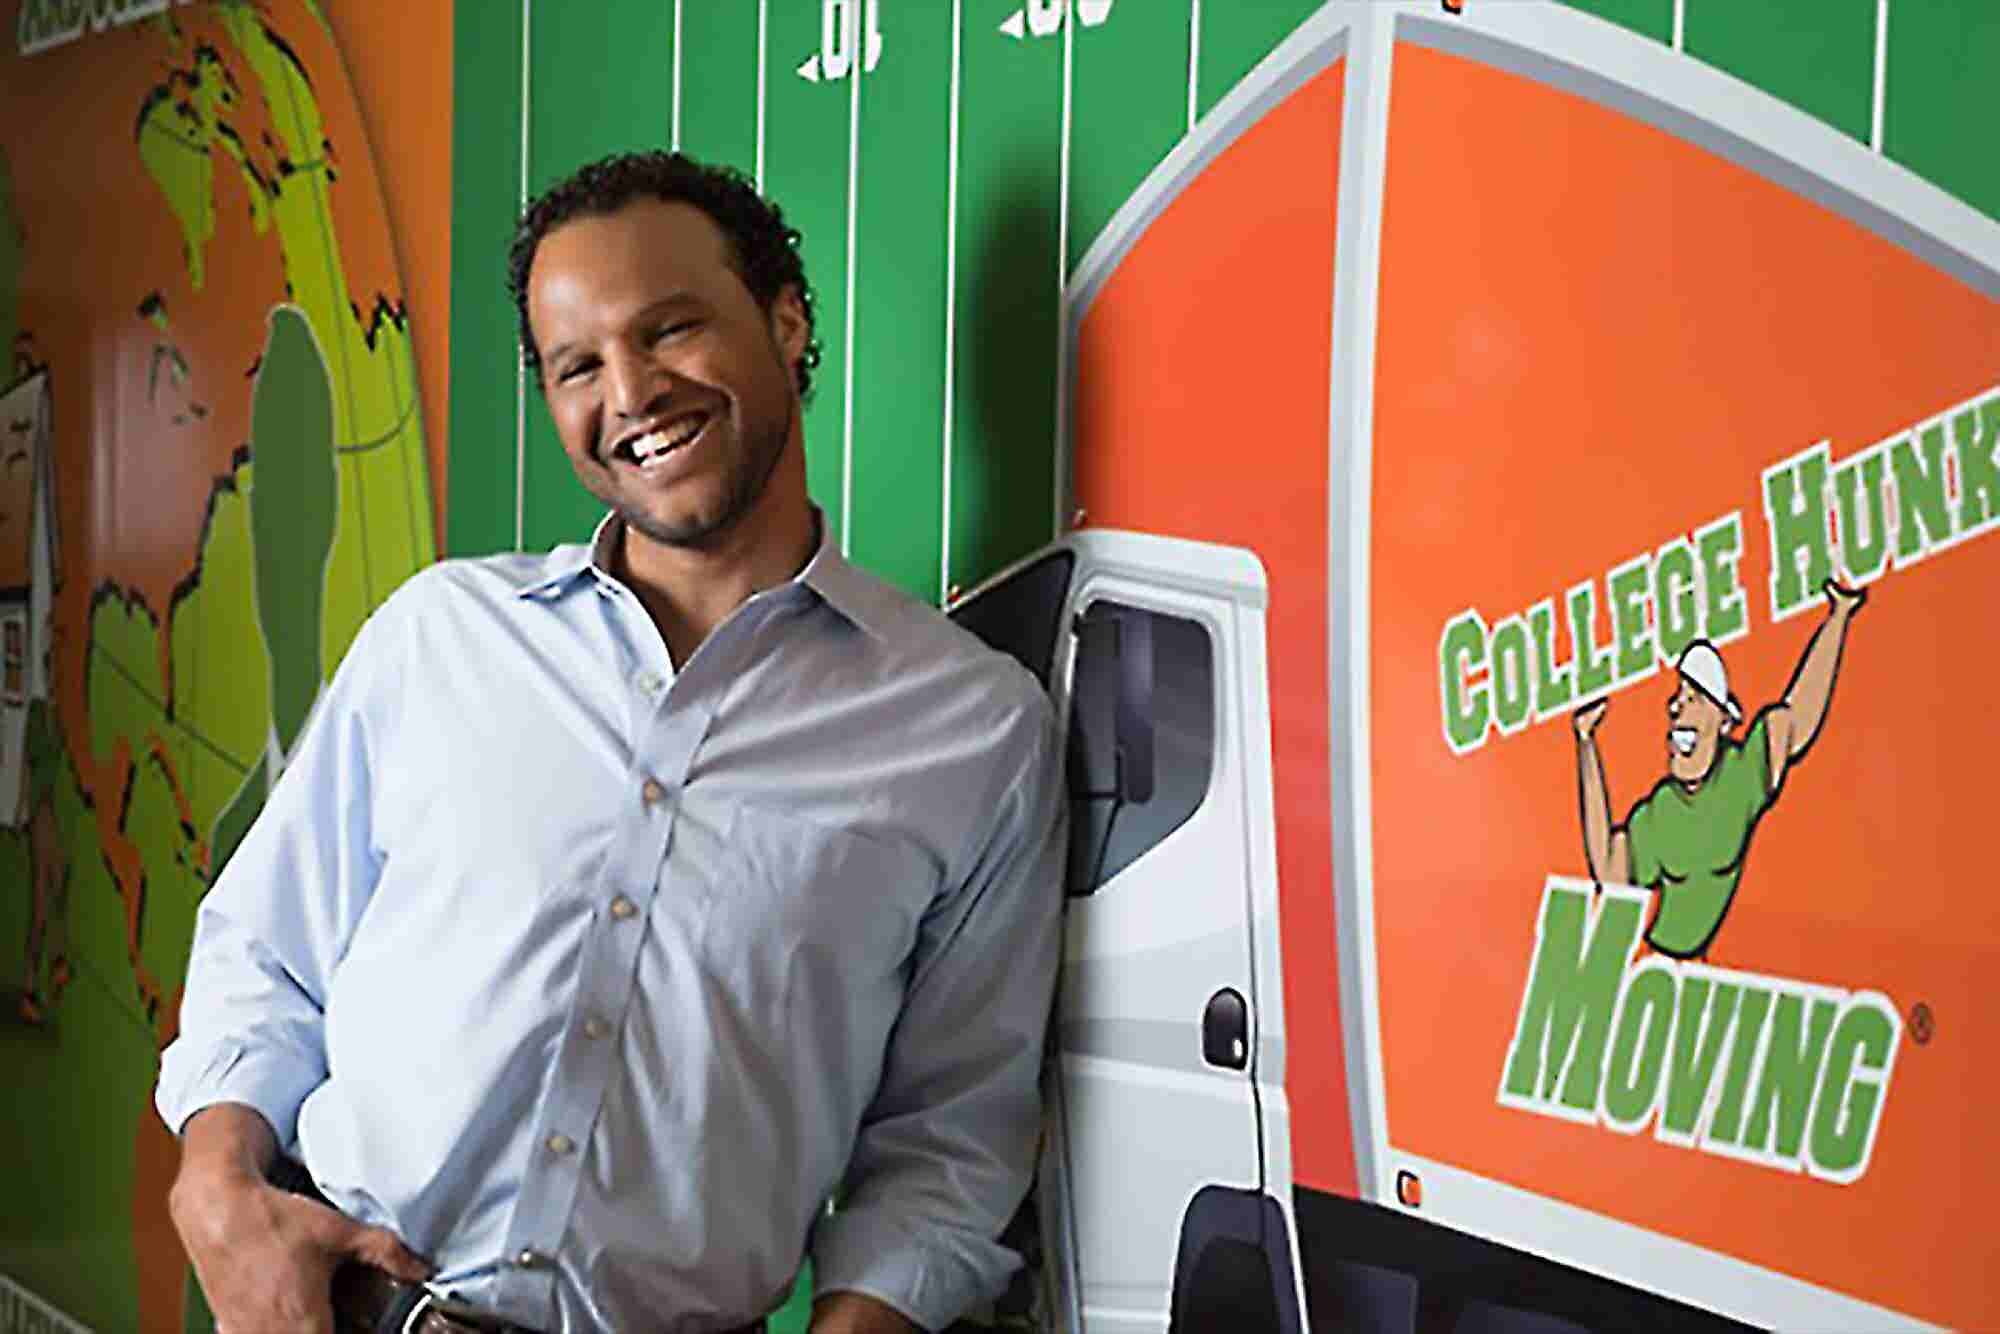 Franchise Players: A 'College Hunk' Franchisee on Dealing With Red Tape